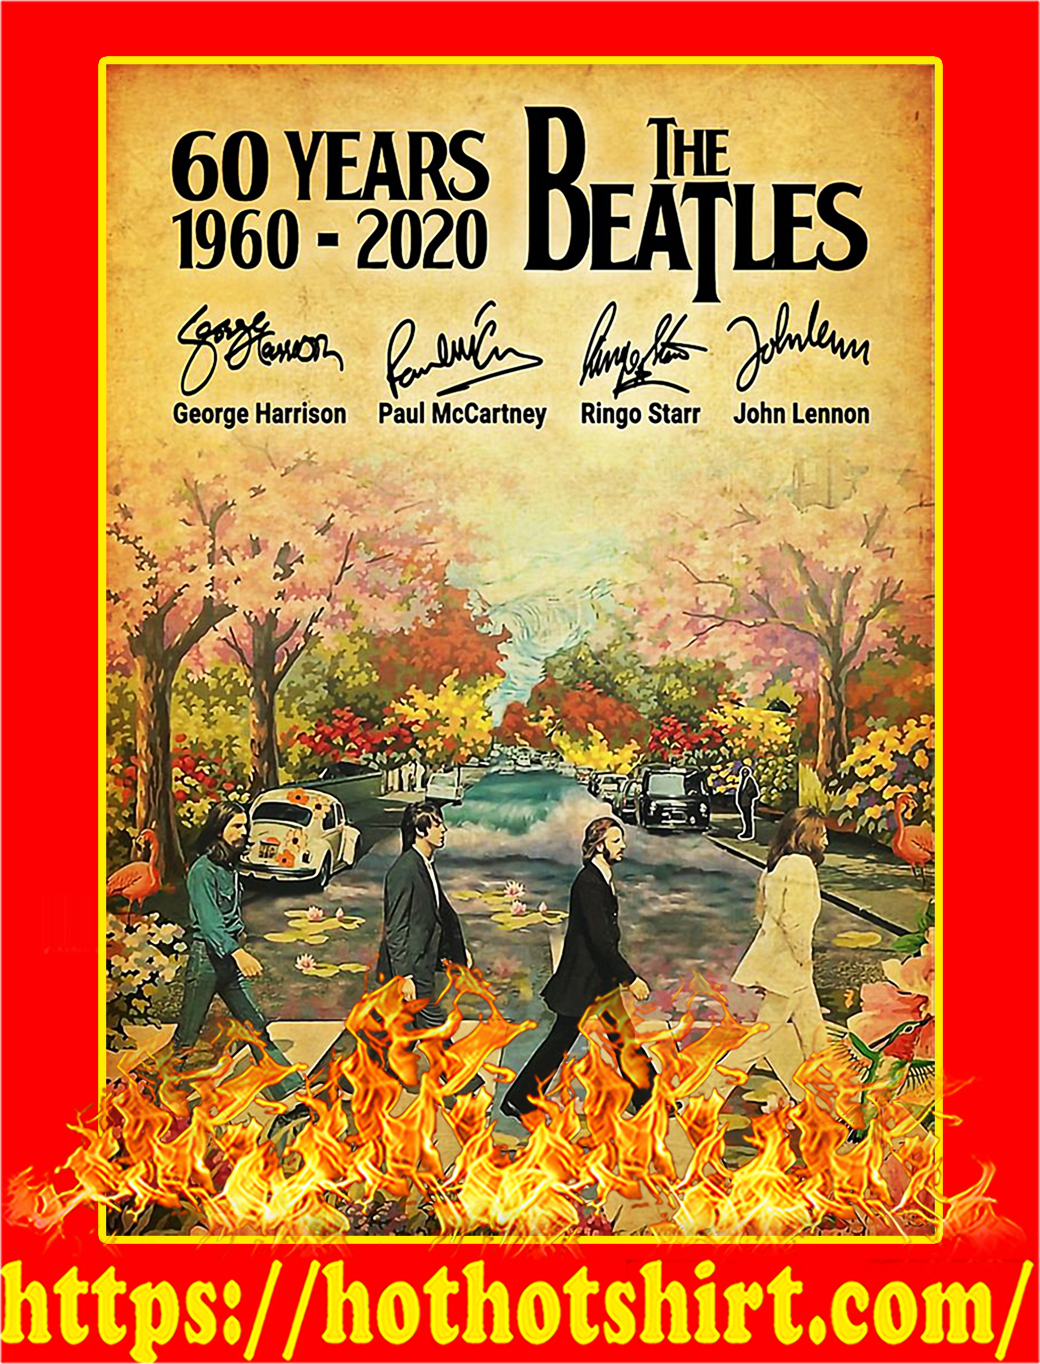 60 Years The Beatles 1960 2020 Signature Poster - A3